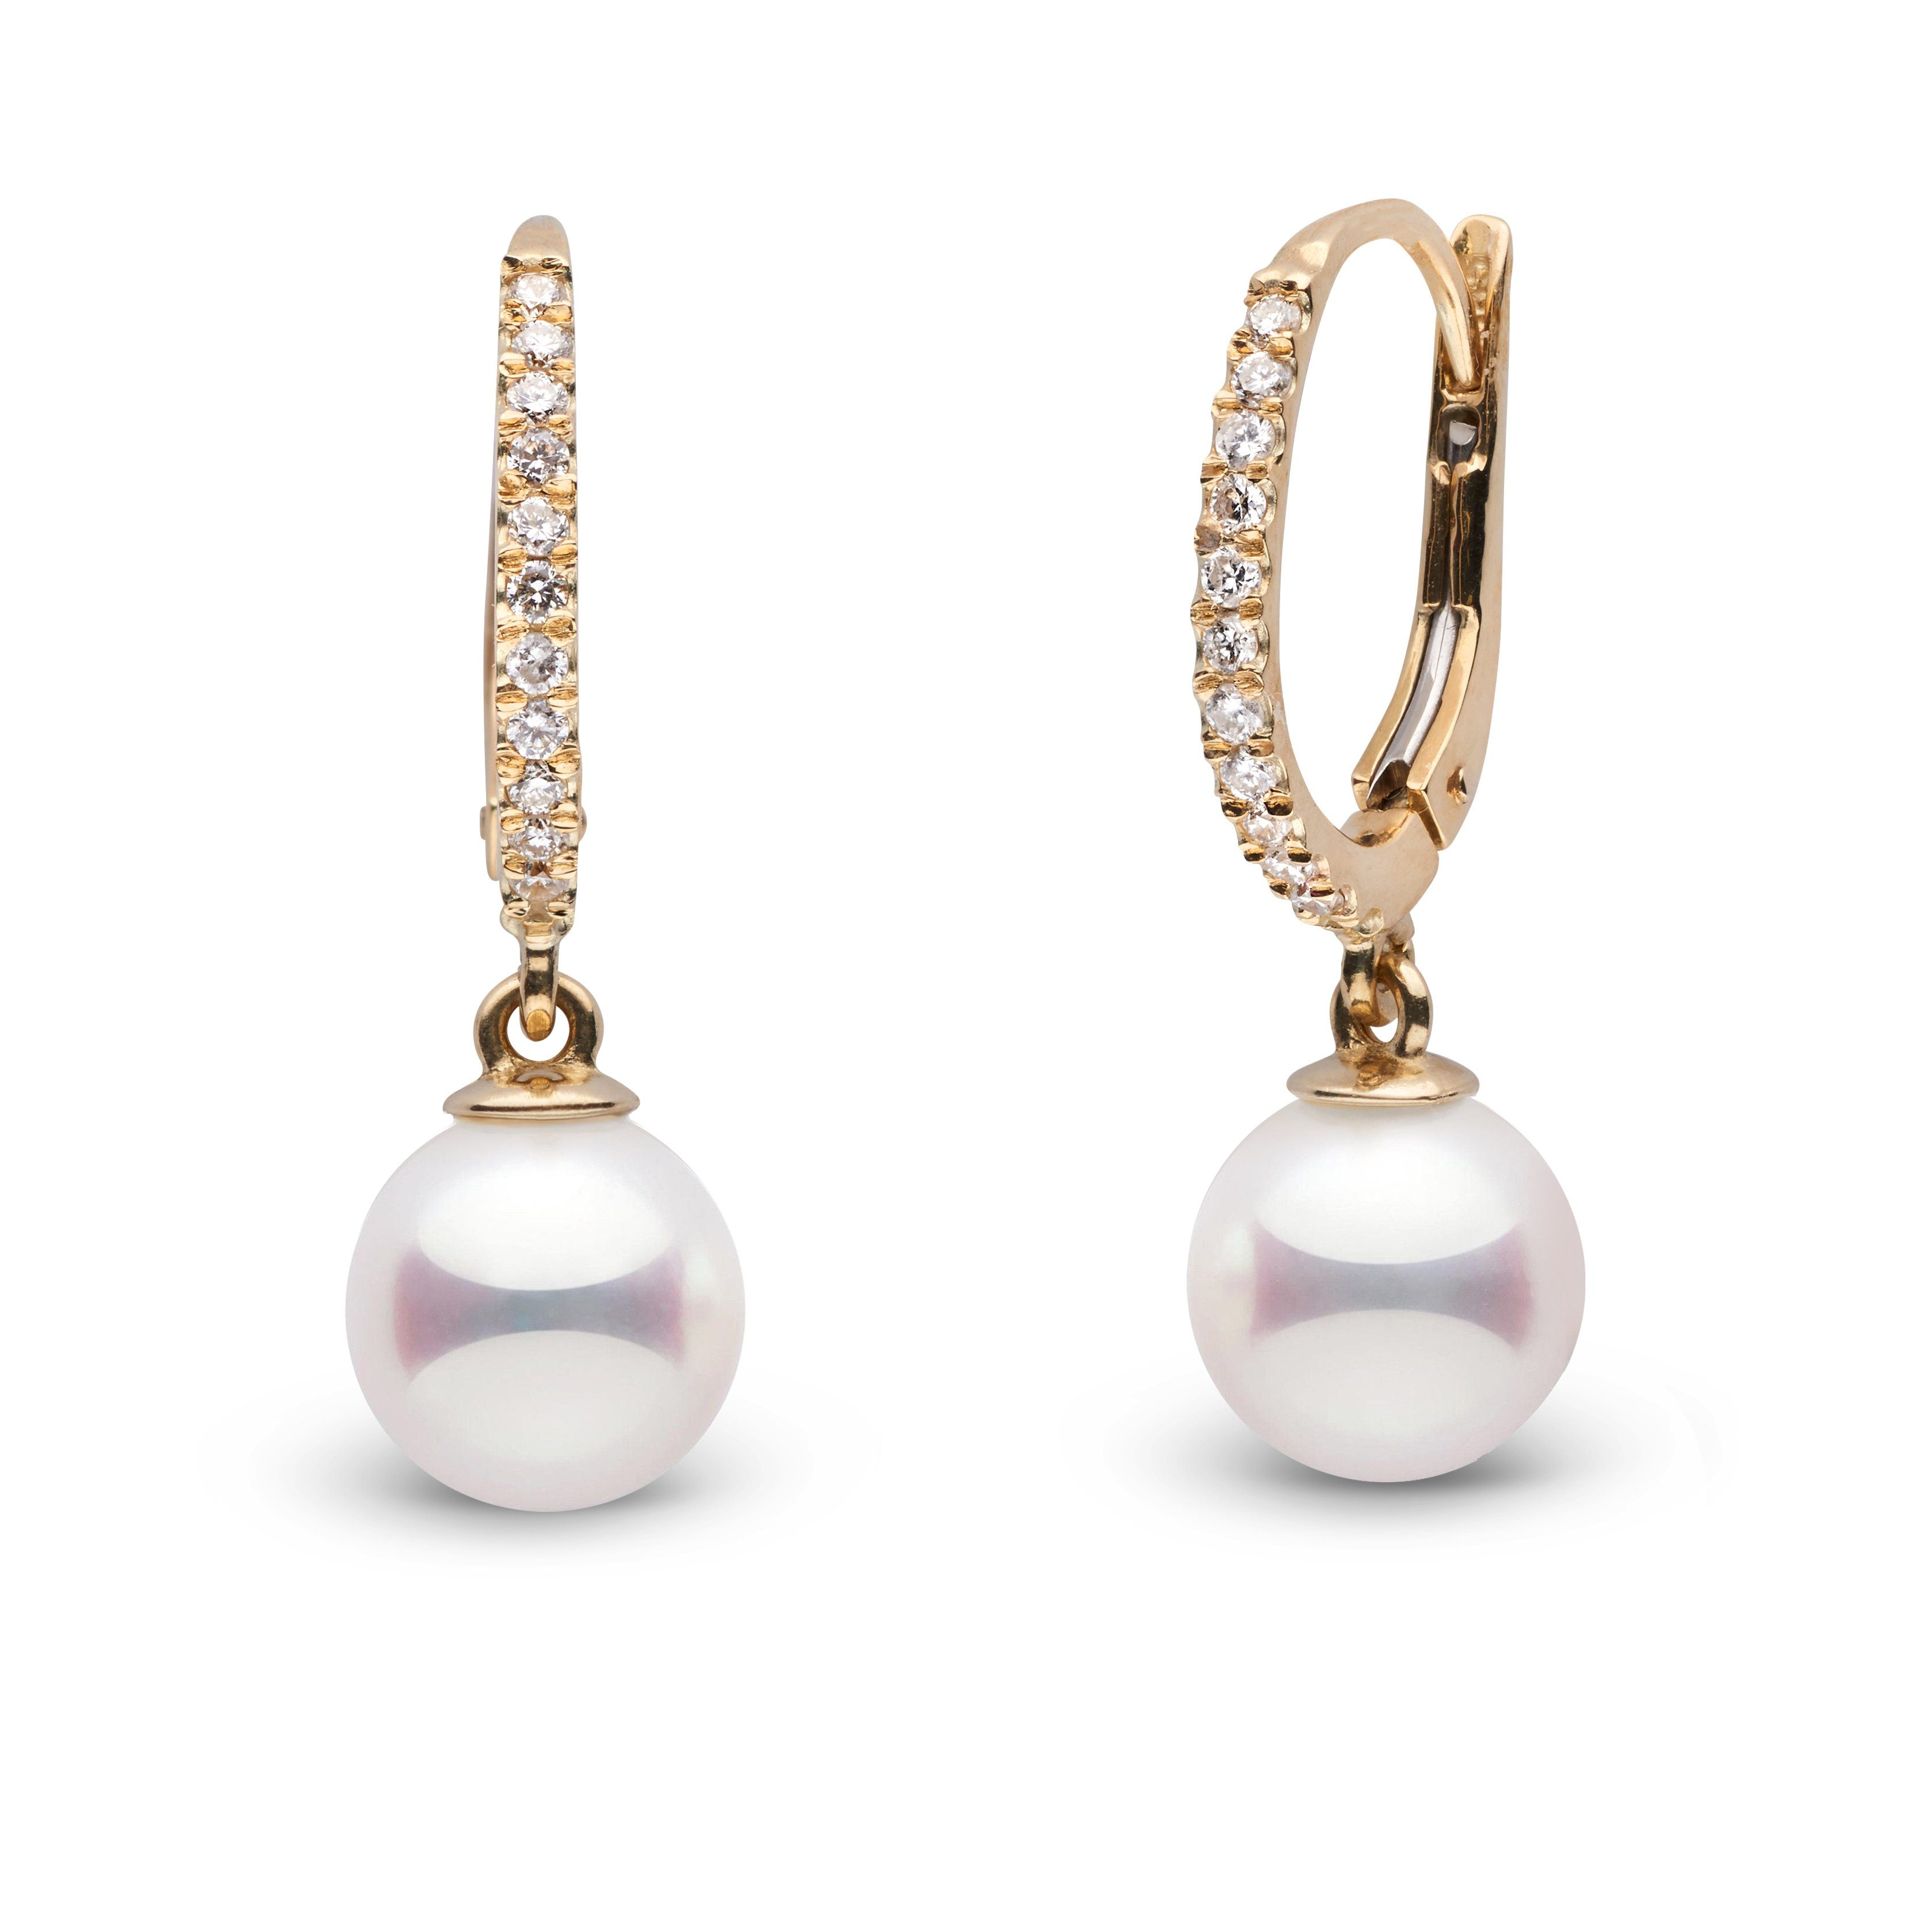 Eternal Collection 7.0-7.5 mm White Hanadama Pearl and Diamond Dangle Earrings